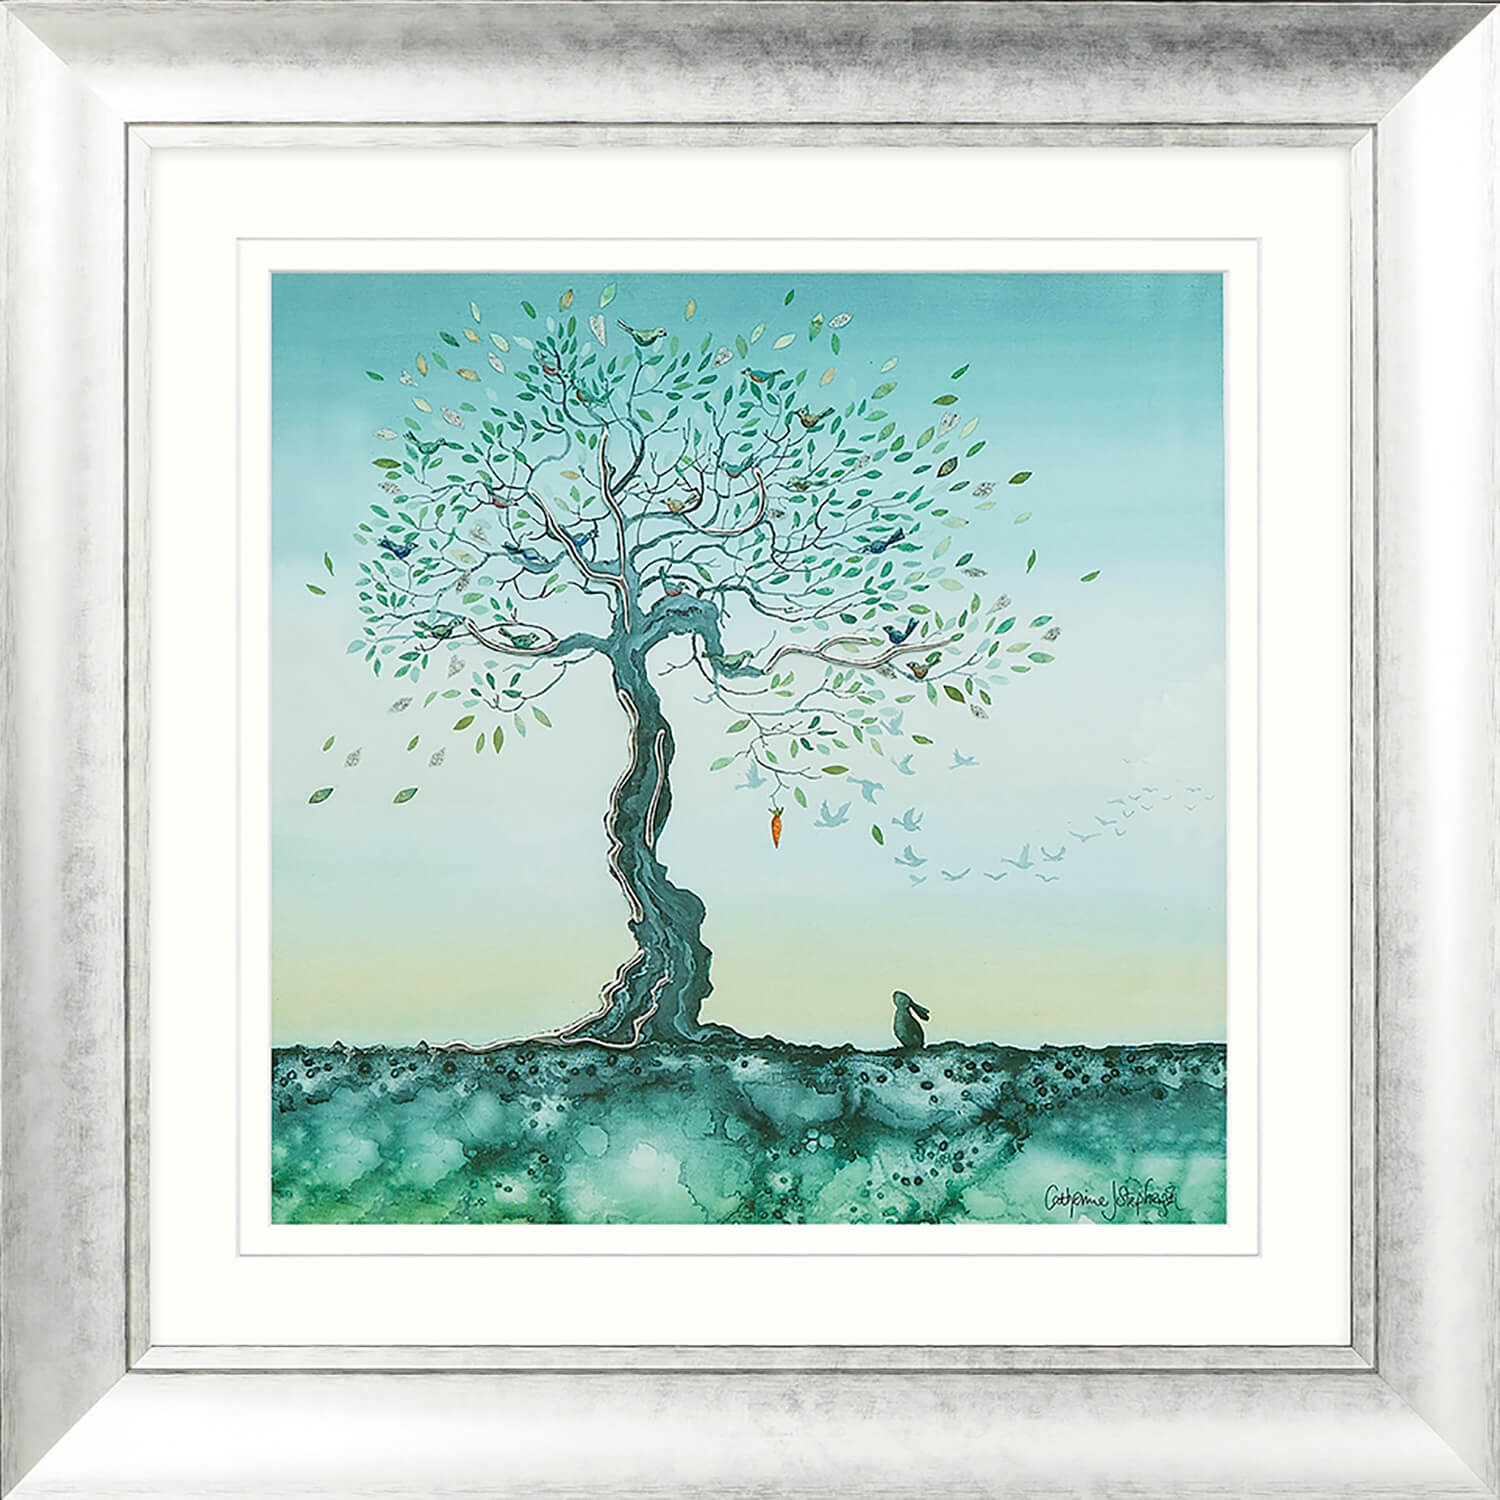 Image of Hope By Catherine Stephenson, Framed Picture